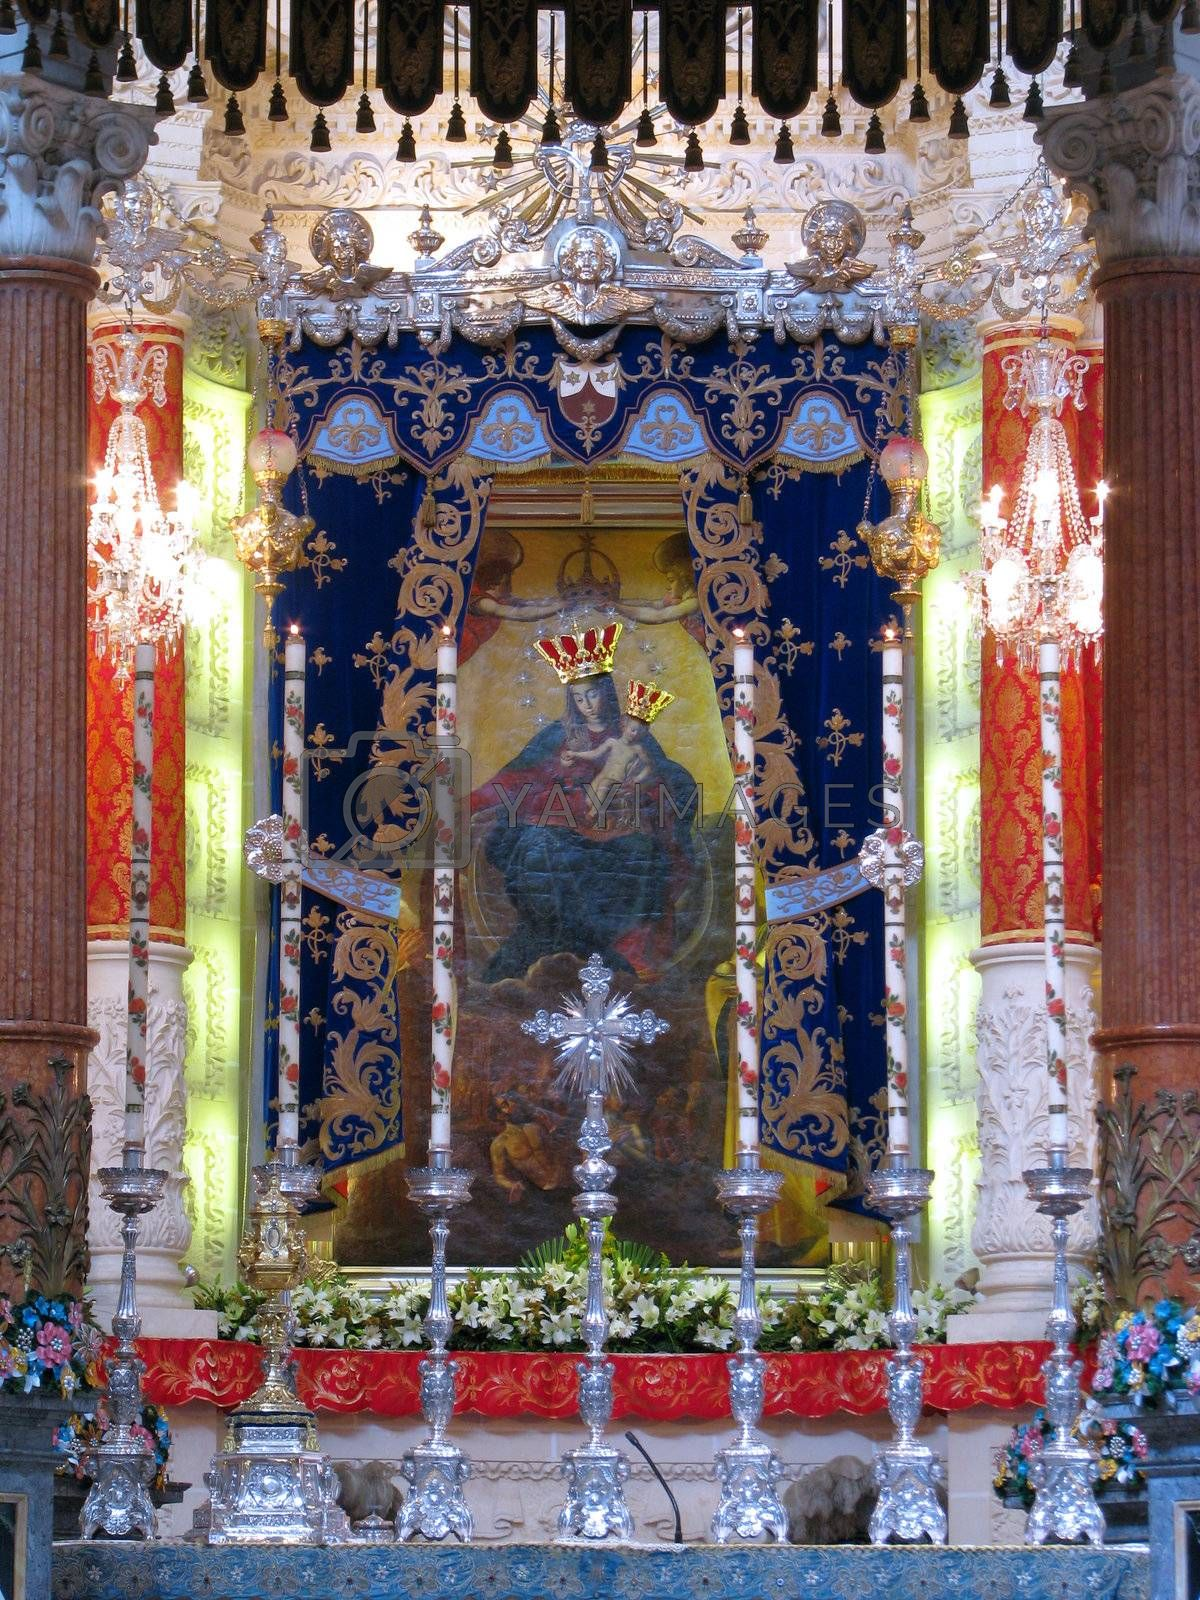 A painting of Our Lady of Mount Carmel in Valletta, Malta.